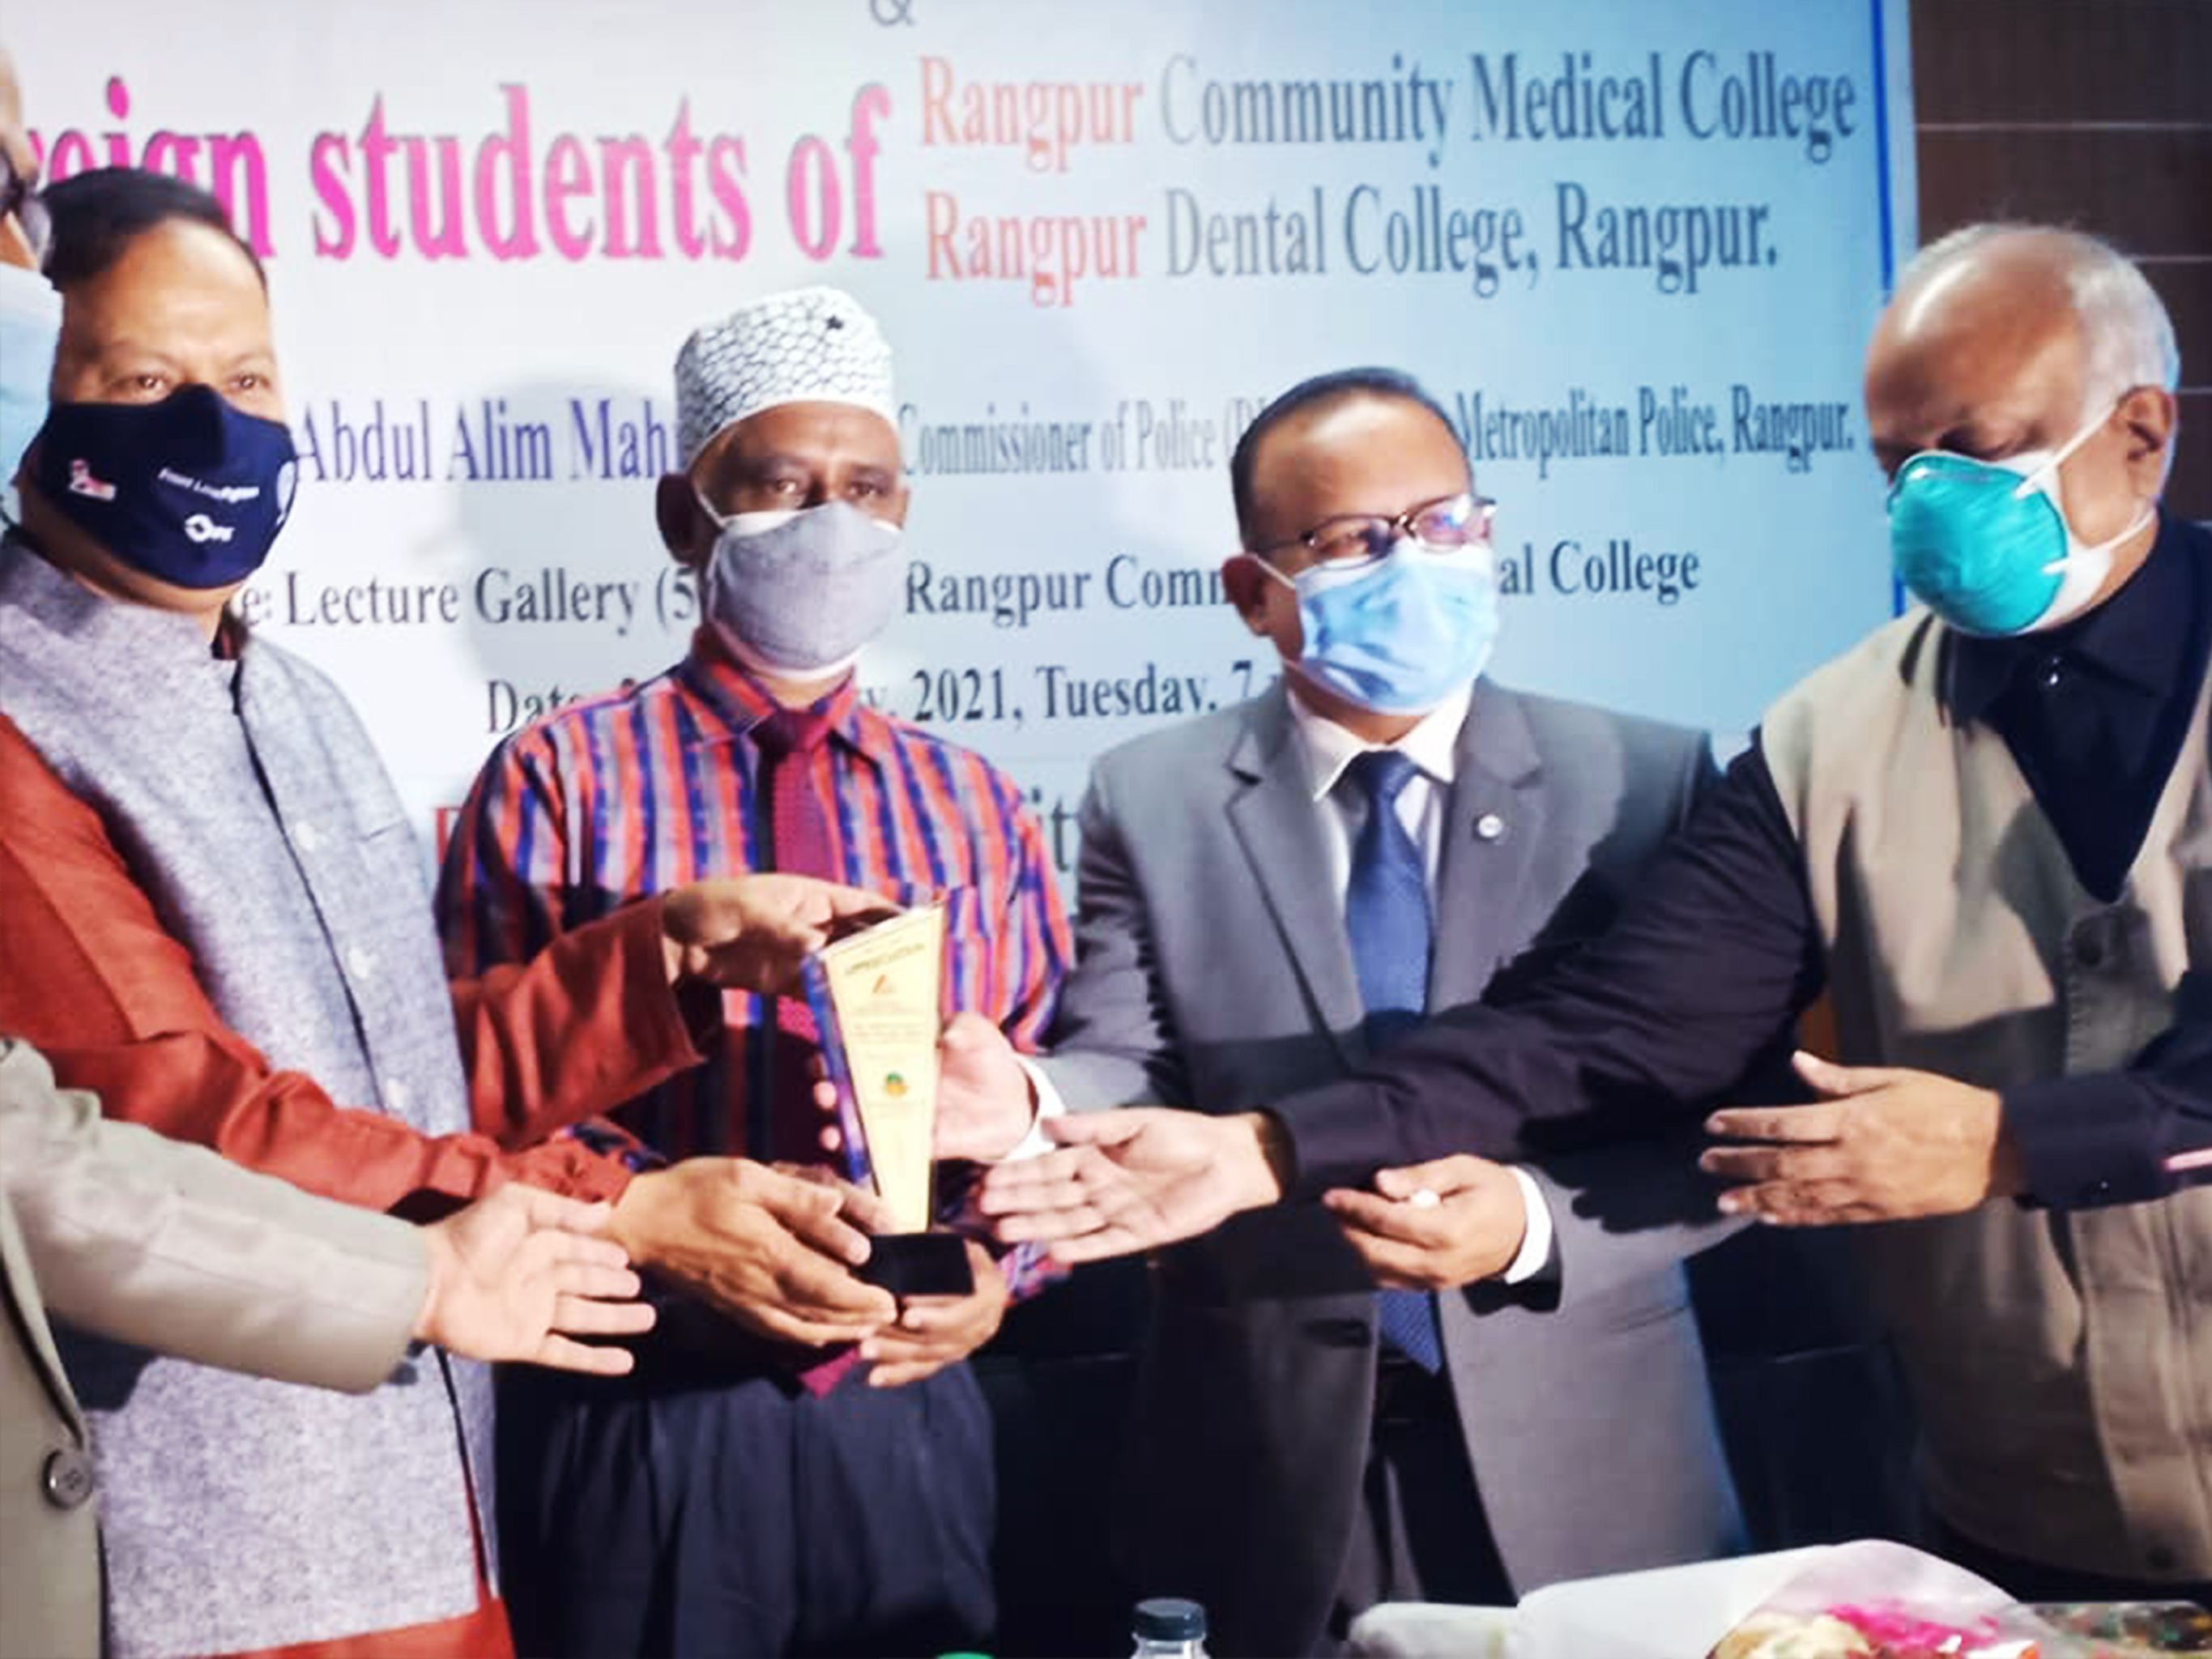 A discussion session between Rangpur Police Commissioner & Foreign students of RCMC & RDC